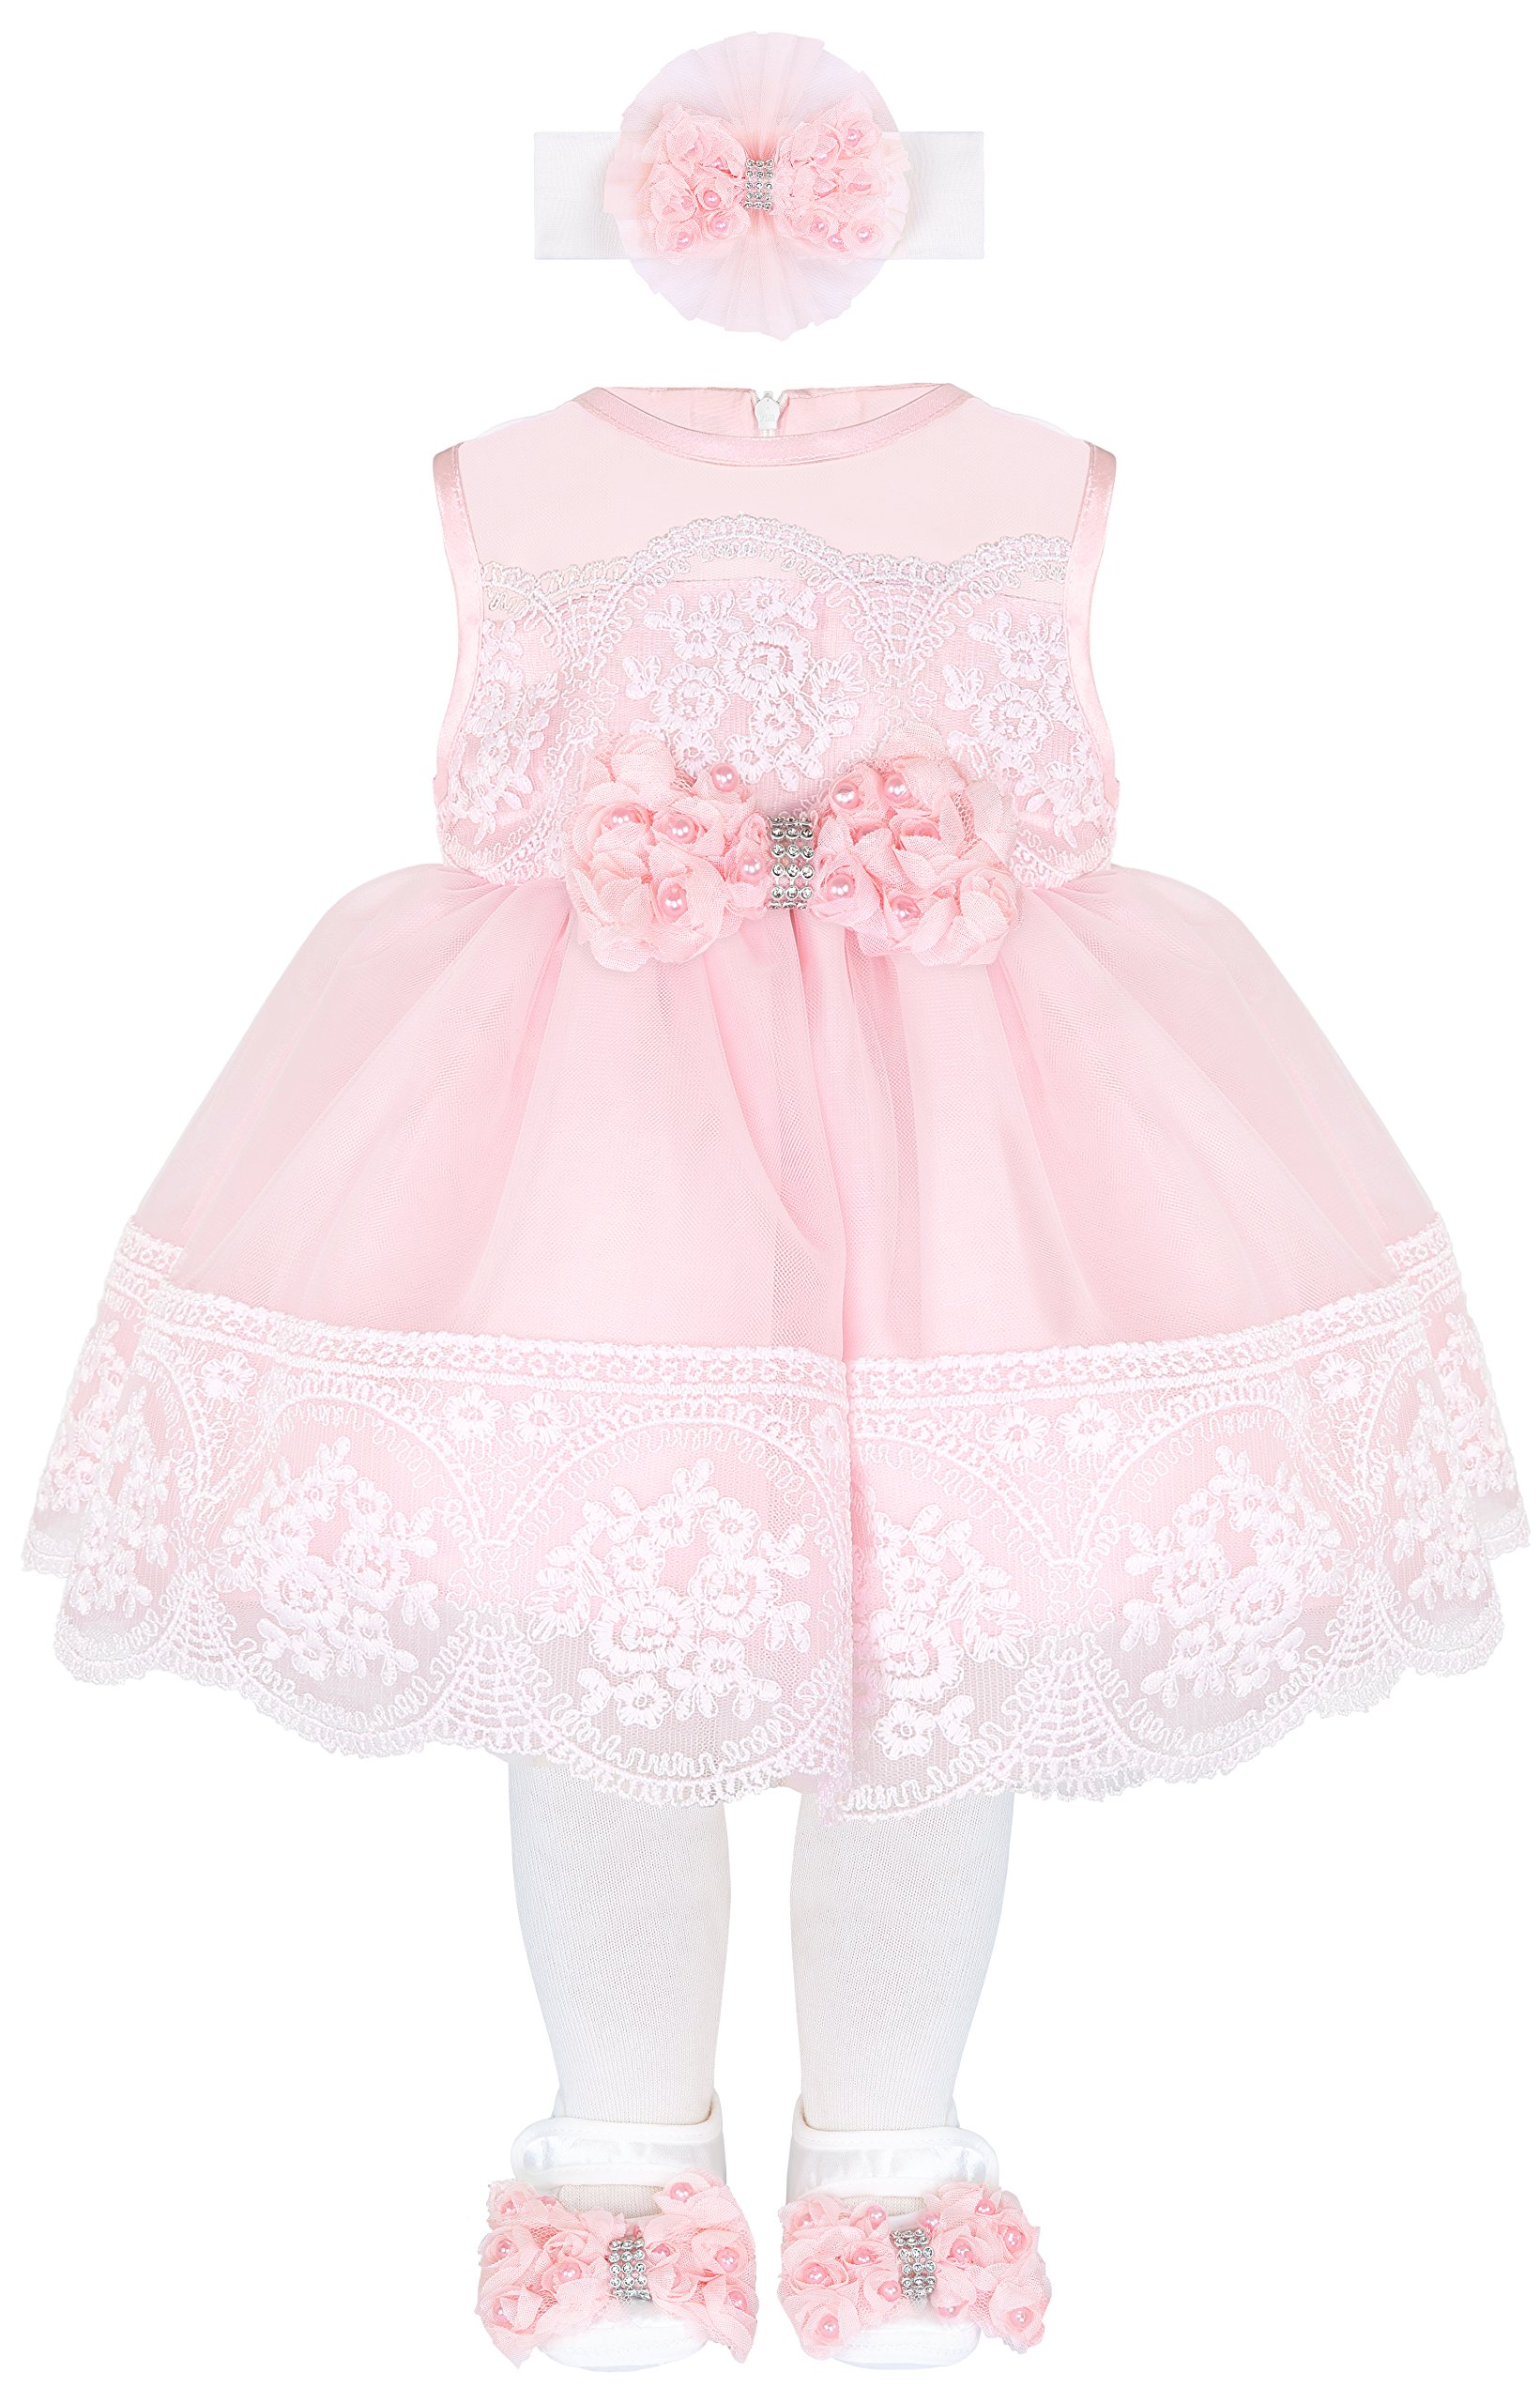 Baby Girl Newborn Pink Embroidered Princess Dress Gown 6 Piece Deluxe Set 0-3 Months